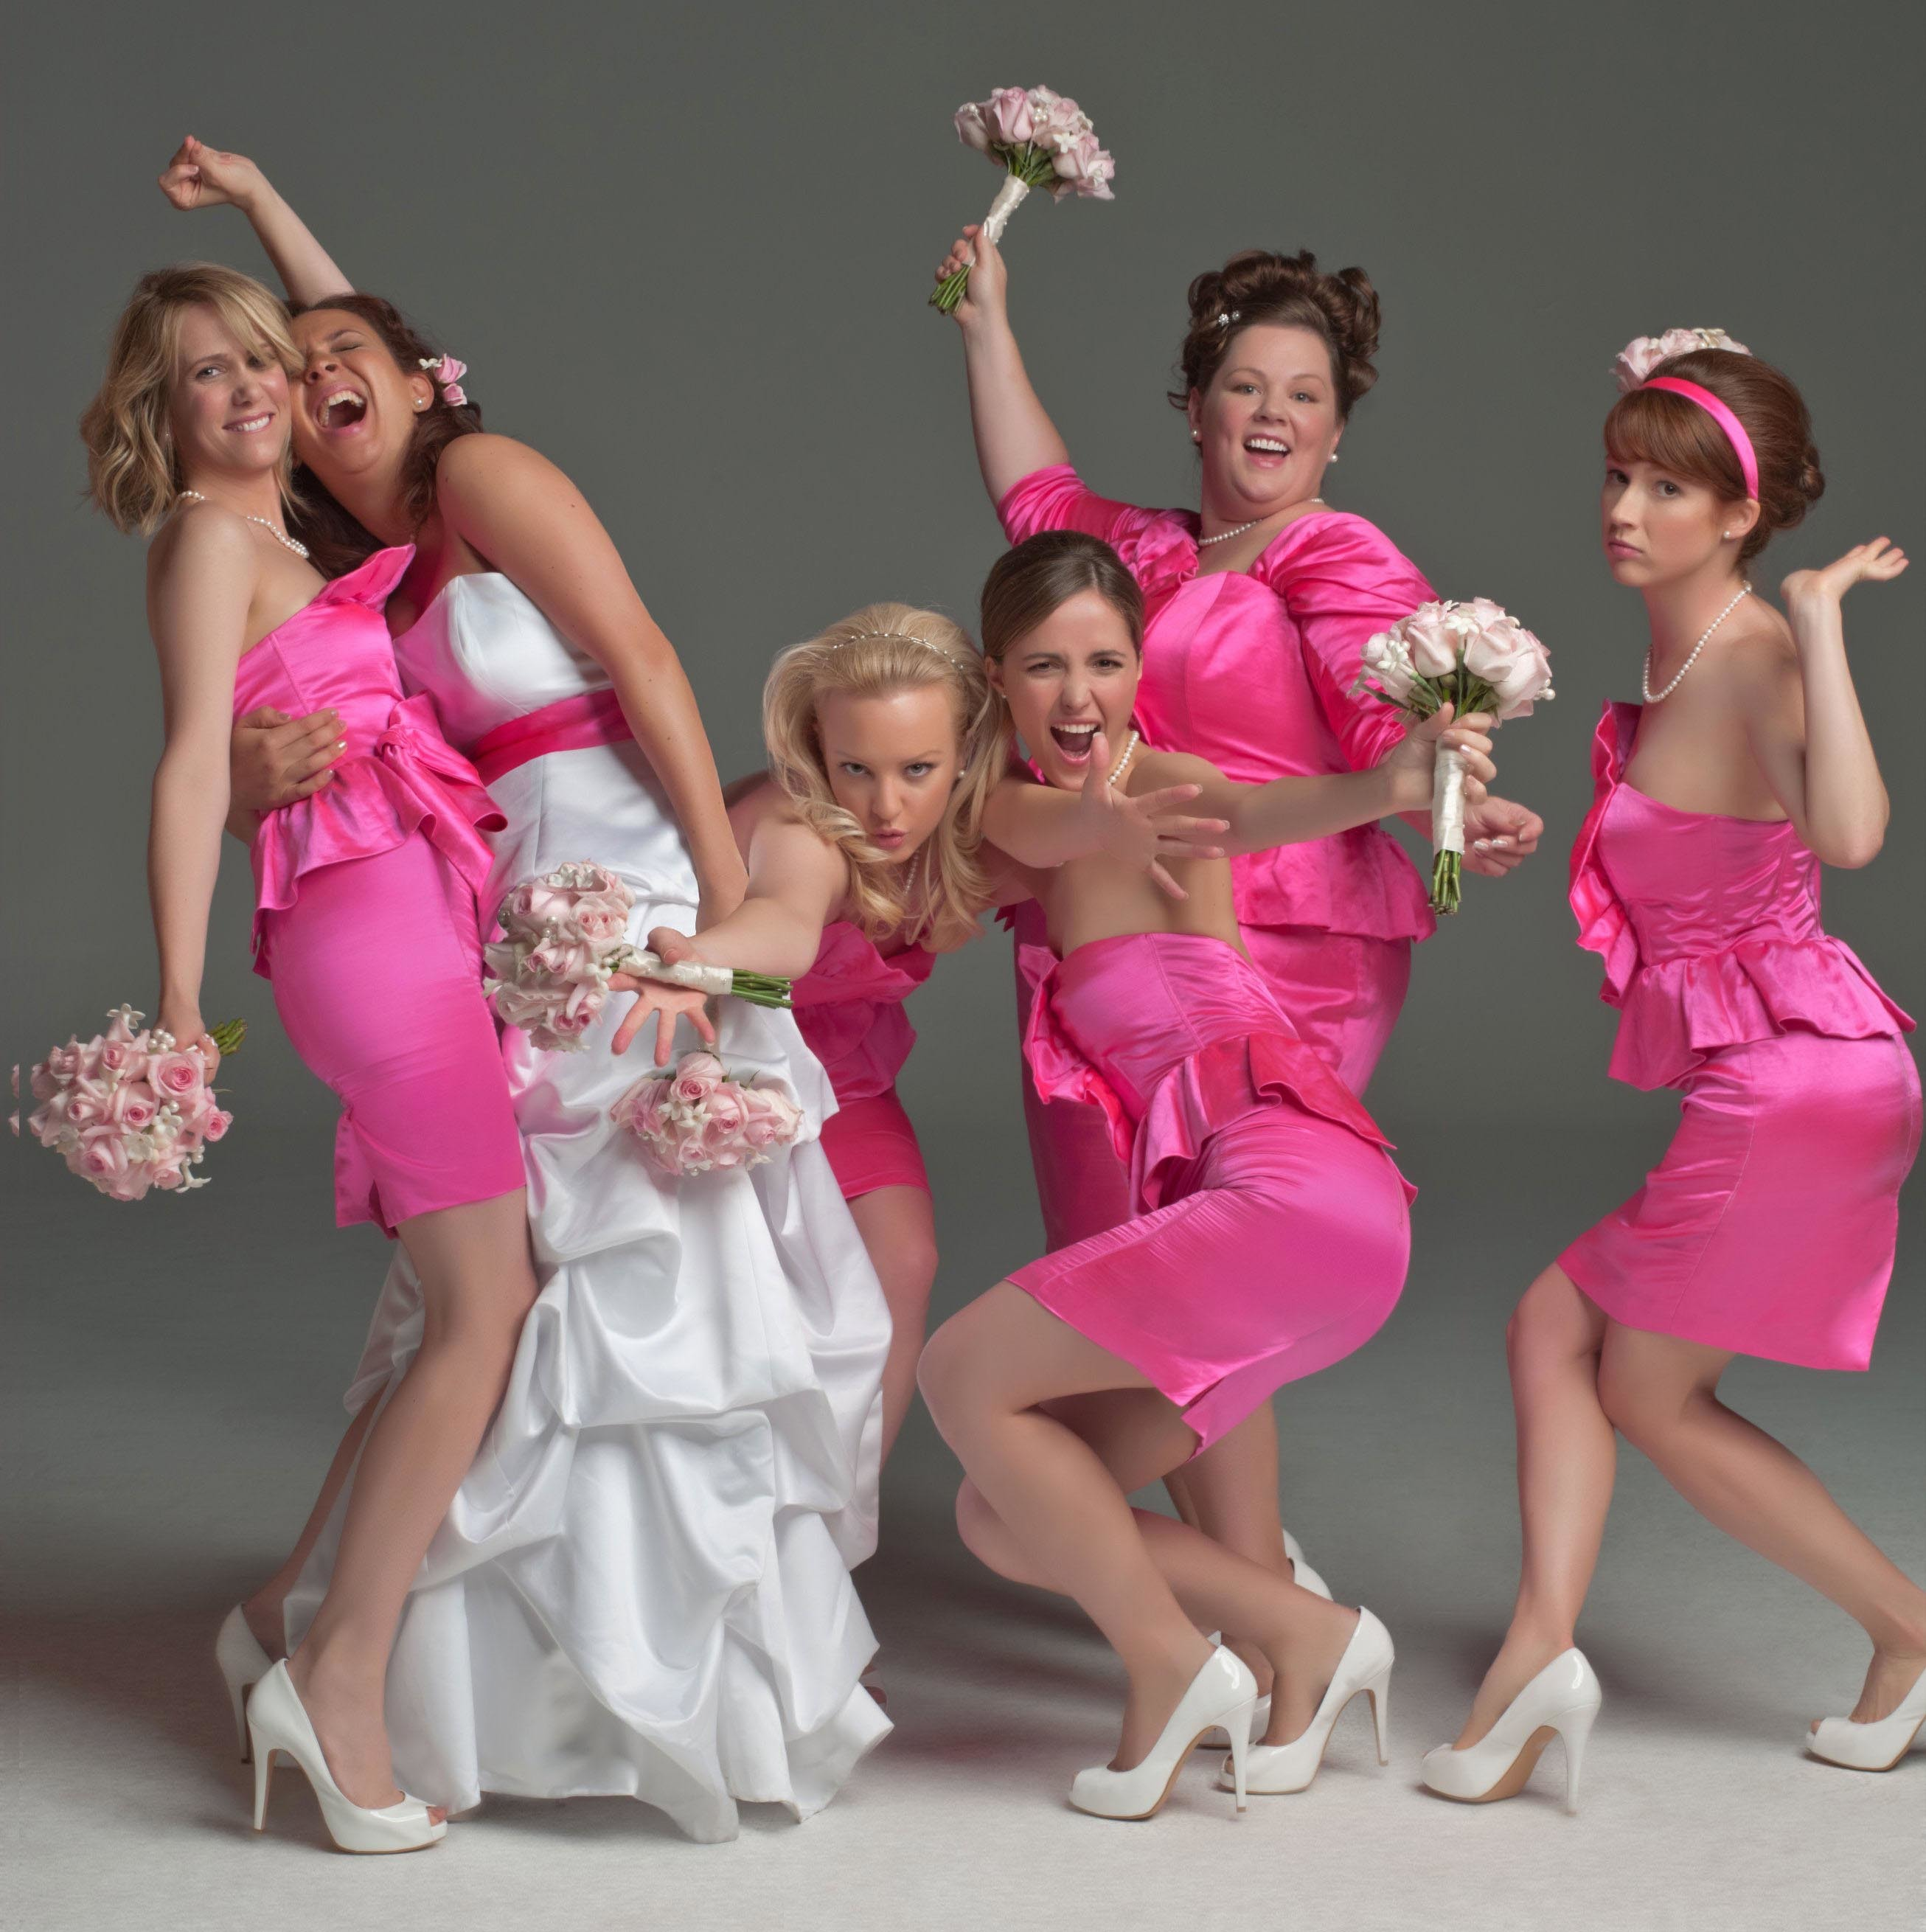 """Kristen Wiig, Maya Rudolph, Wendi Mclendon Covey, Rose Byrne, Melissa McCarthy and Ellie Kemper appear in a promotional photo for 2011's """"Bridesmaids."""""""